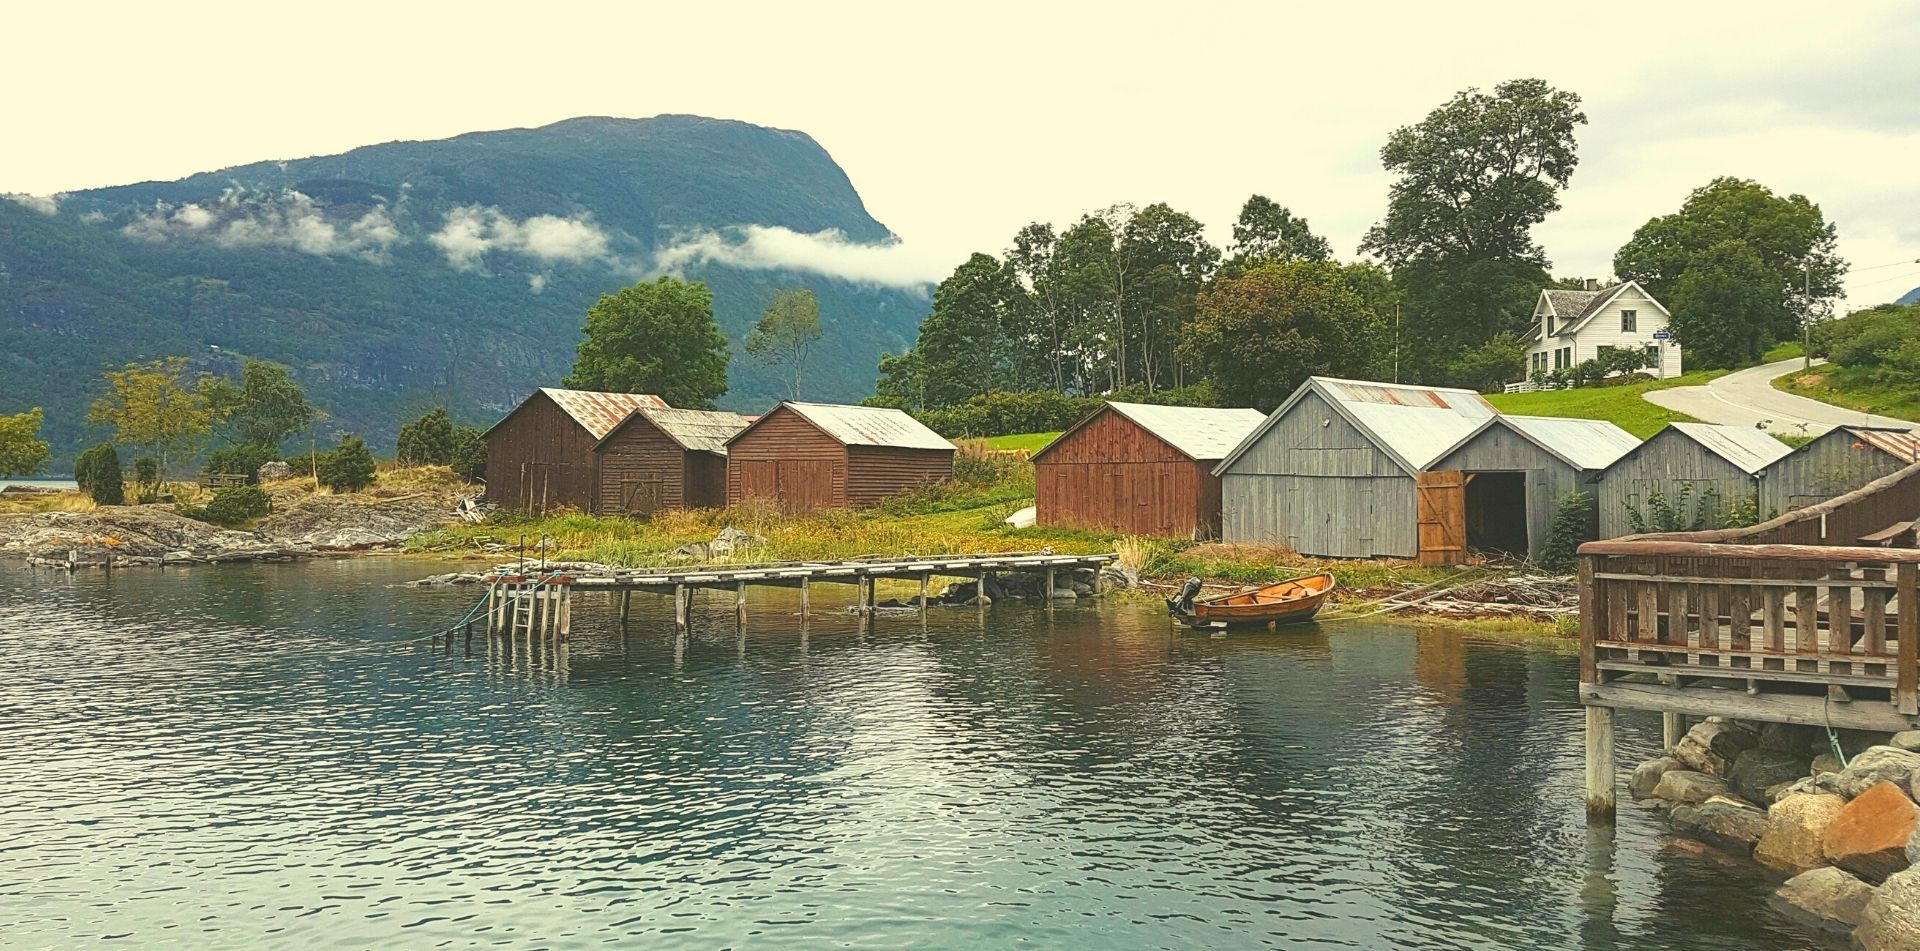 Europe Norway beautiful lakeside huts in local fishing village - luxury vacation destinations